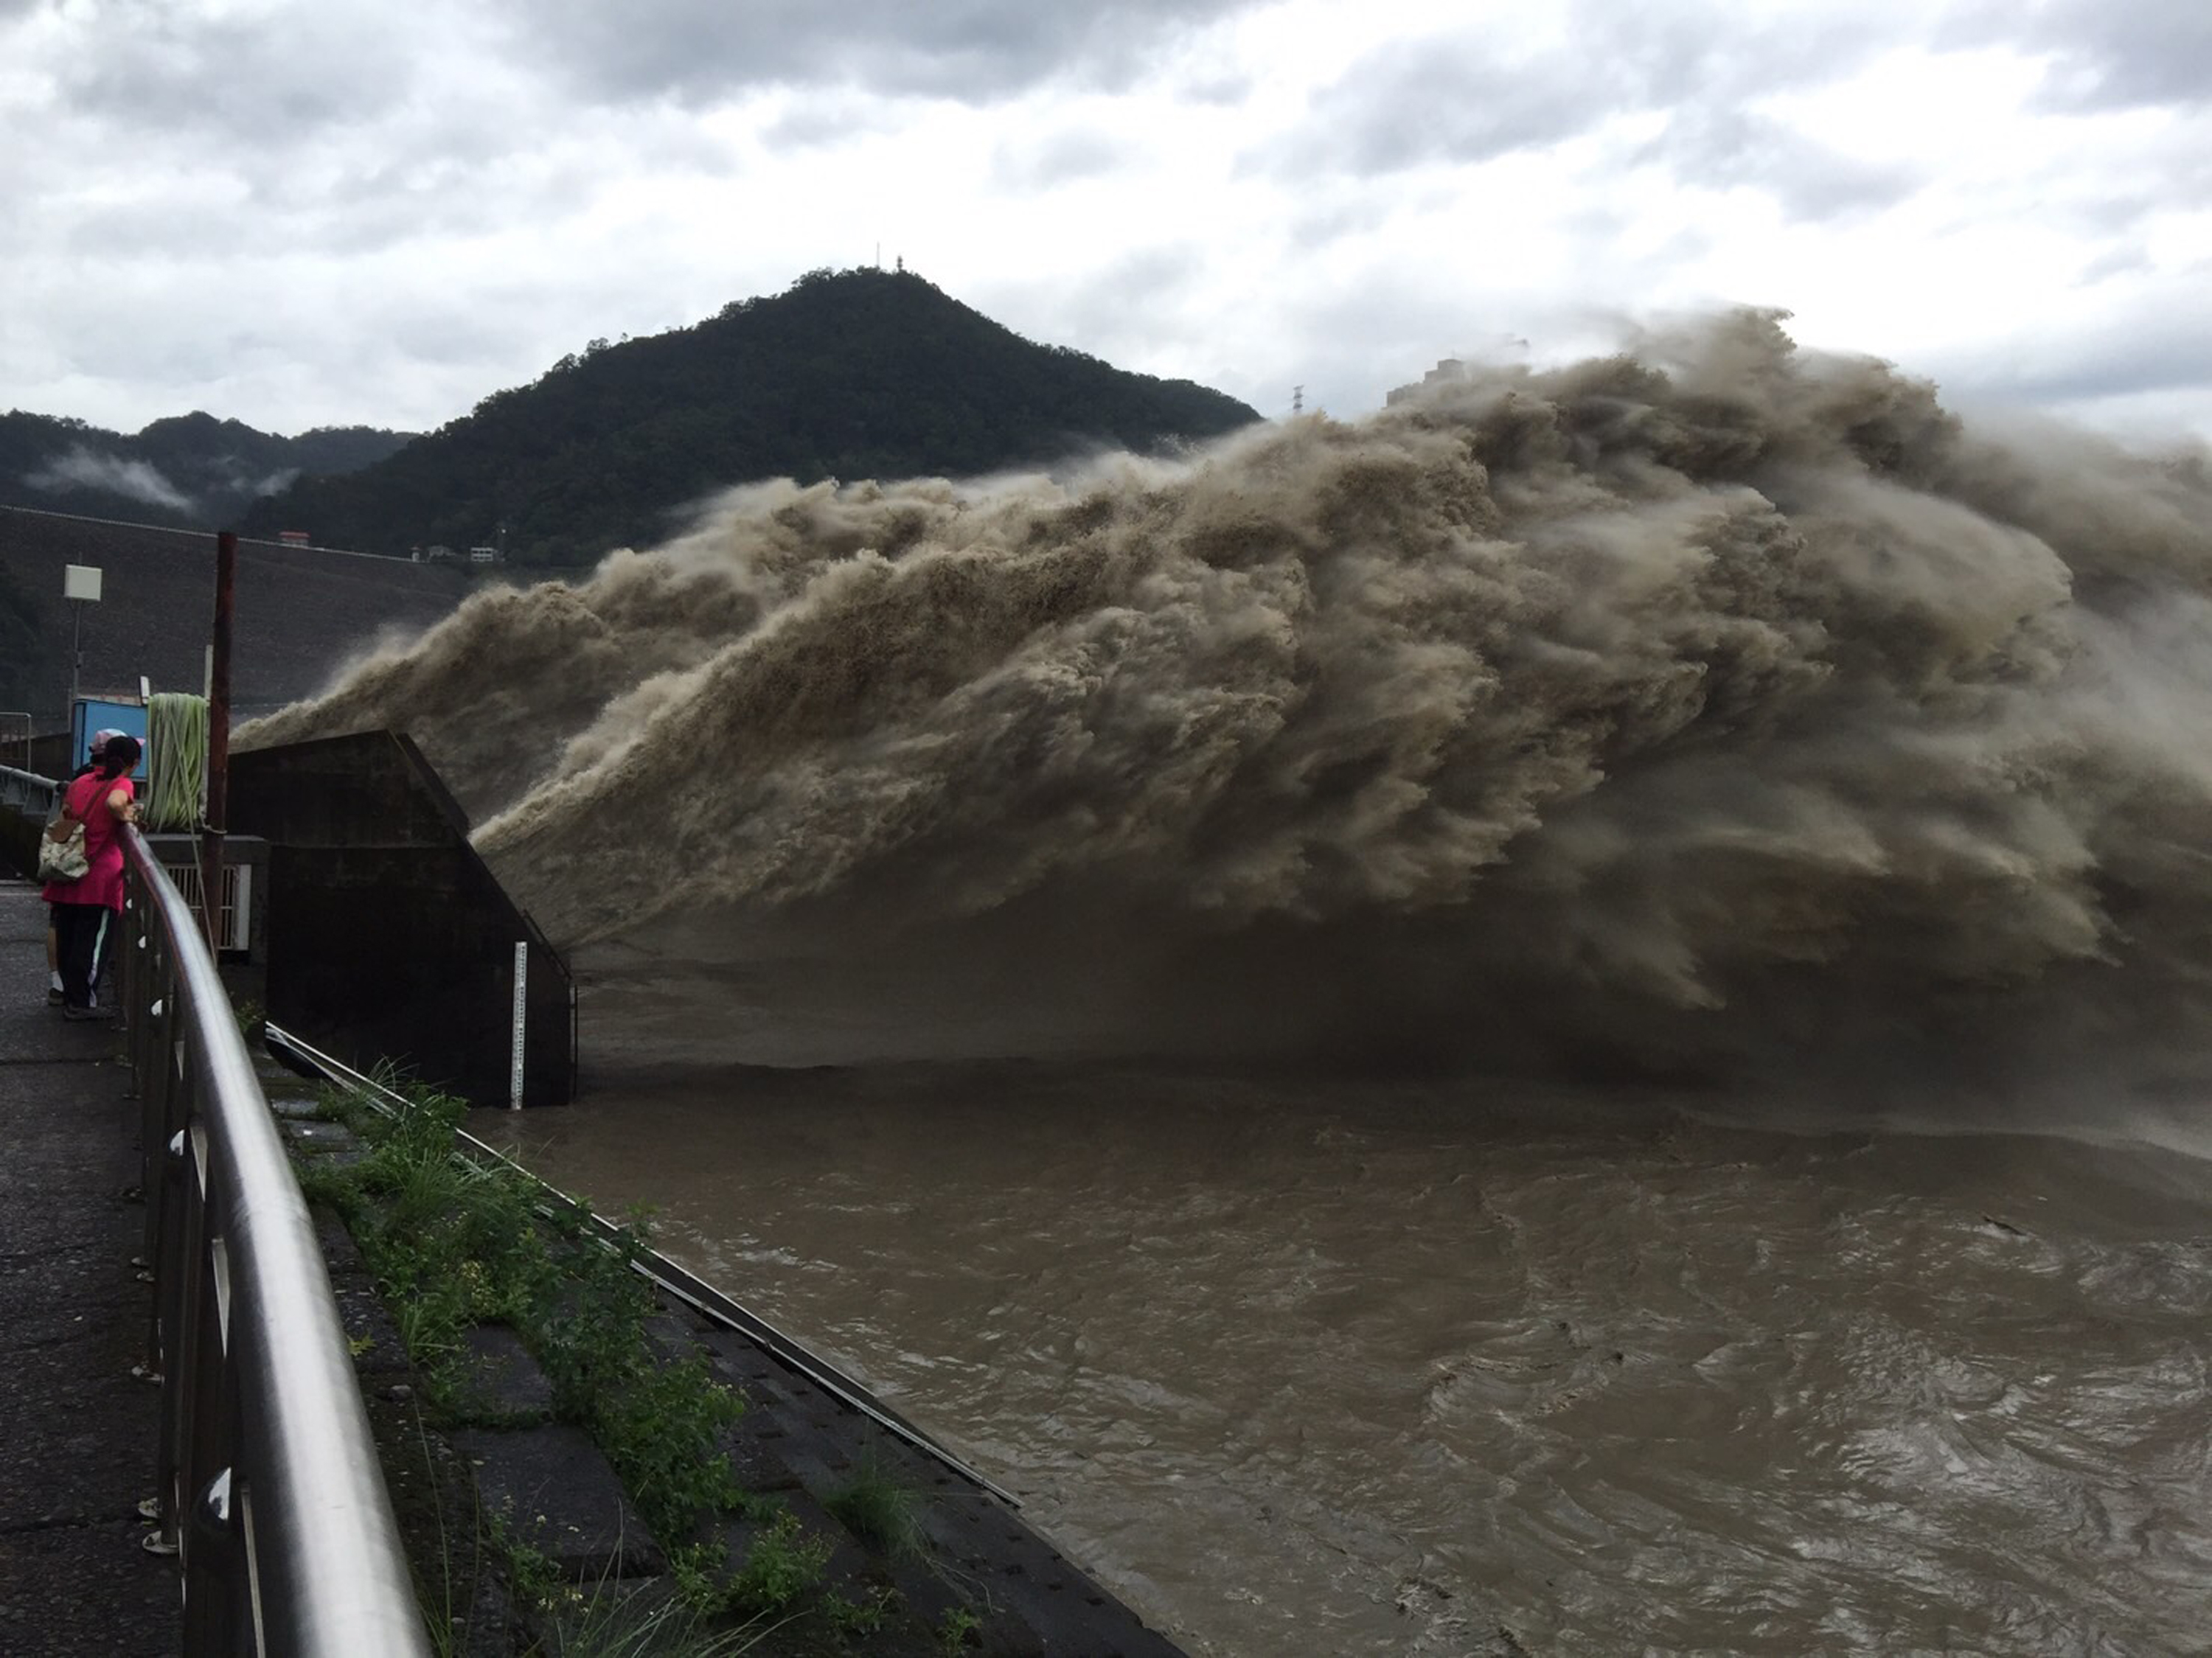 The photo shows a flood discharge from Shihmen Reservoir in Taoyuan after Typhoon Megi.